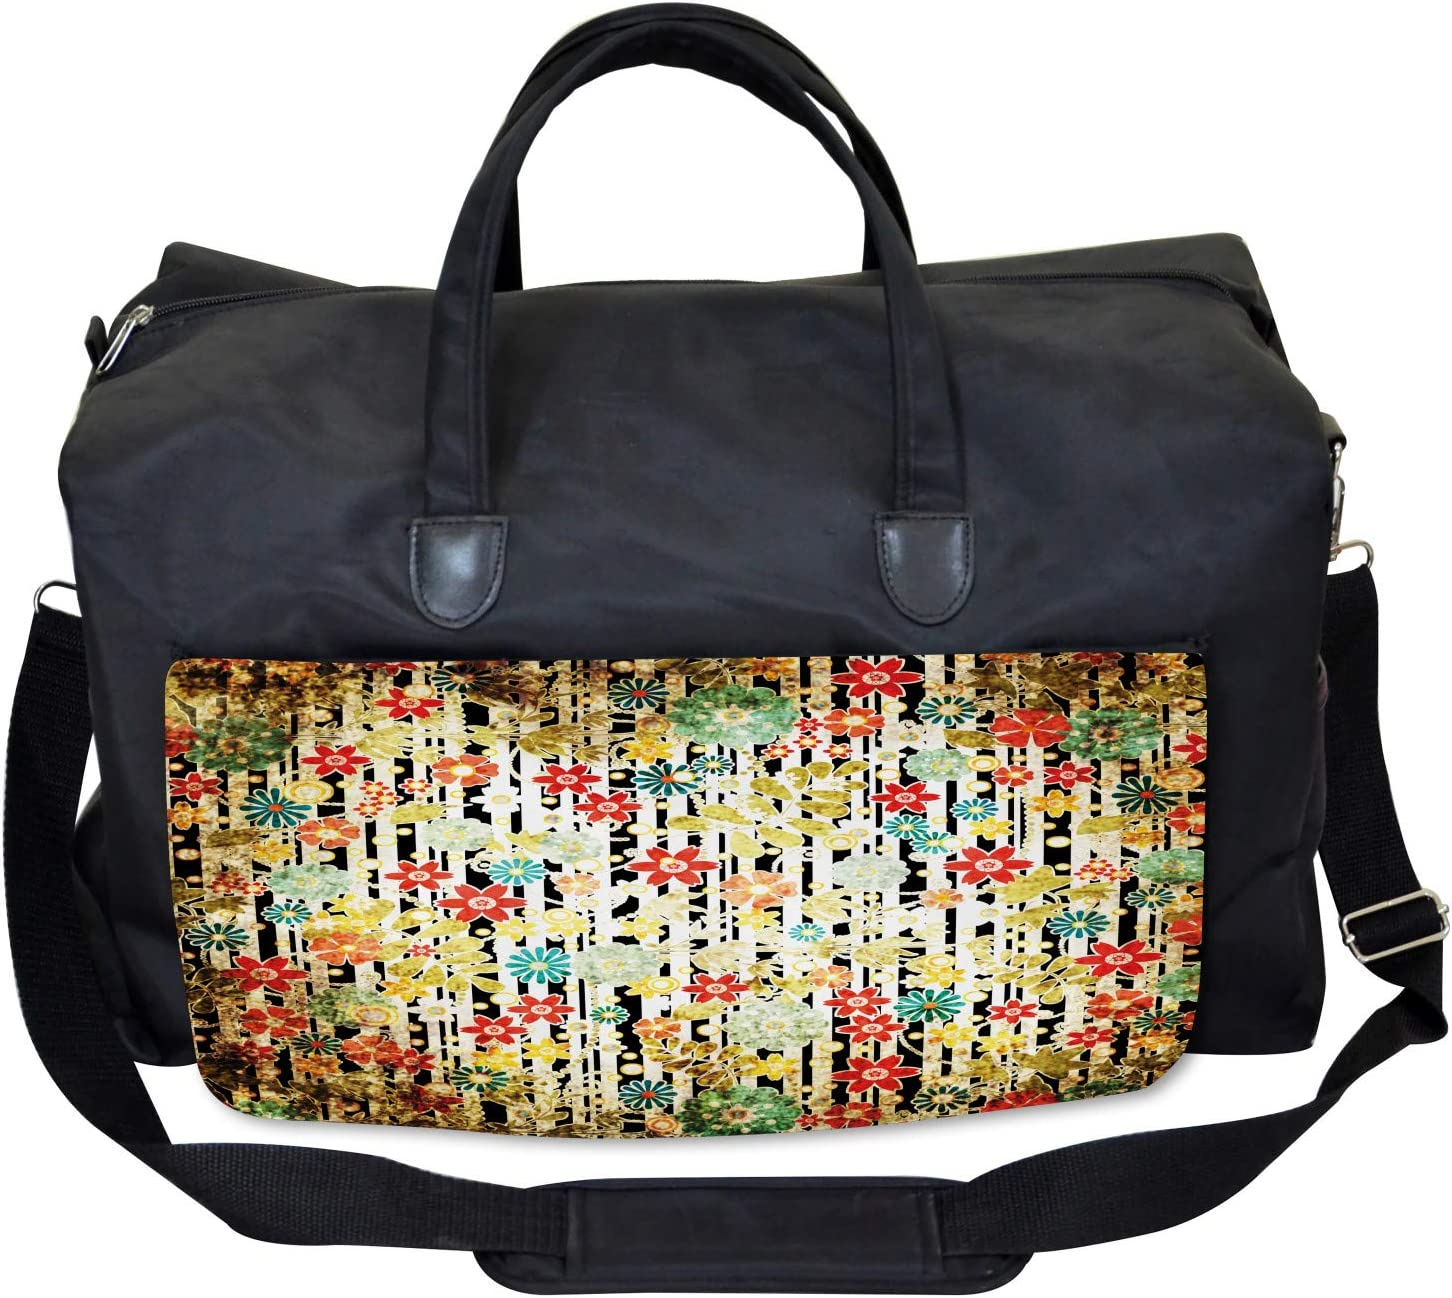 Ambesonne Floral Gym Bag Large Weekender Carry-on Ivy Leaves and Scenery